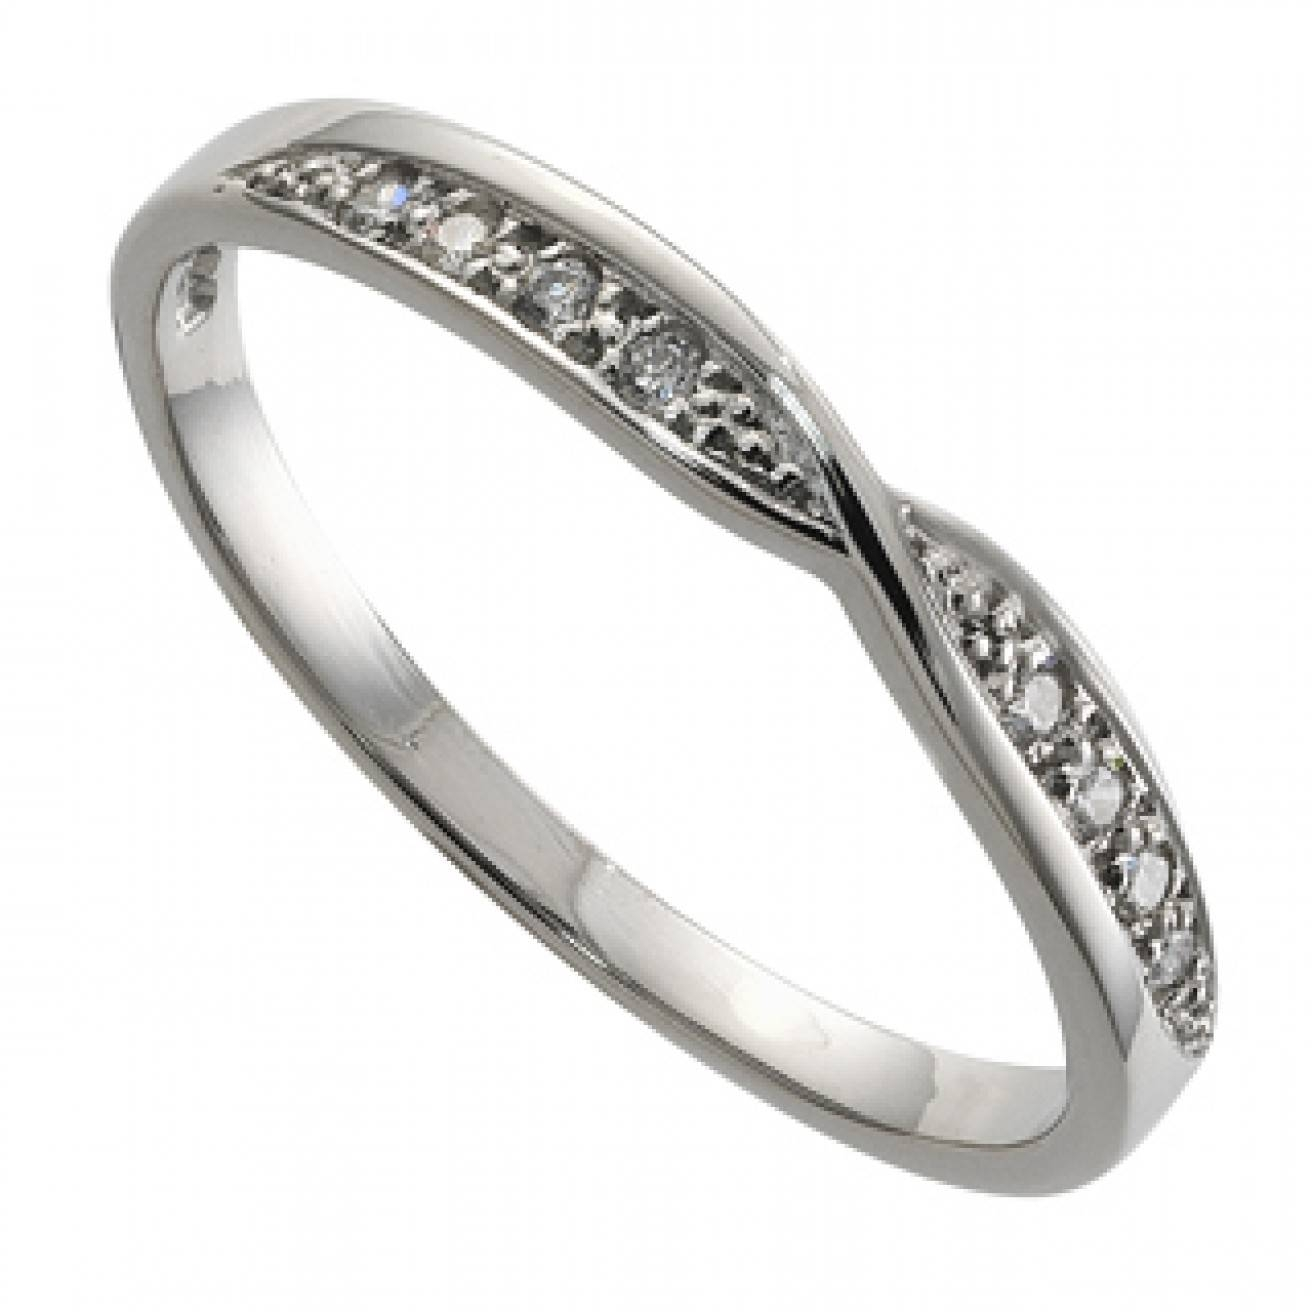 Buy Platinum Wedding Bands Online – Fraser Hart With Regard To Most Recent Platinum Diamond Wedding Bands (View 4 of 15)